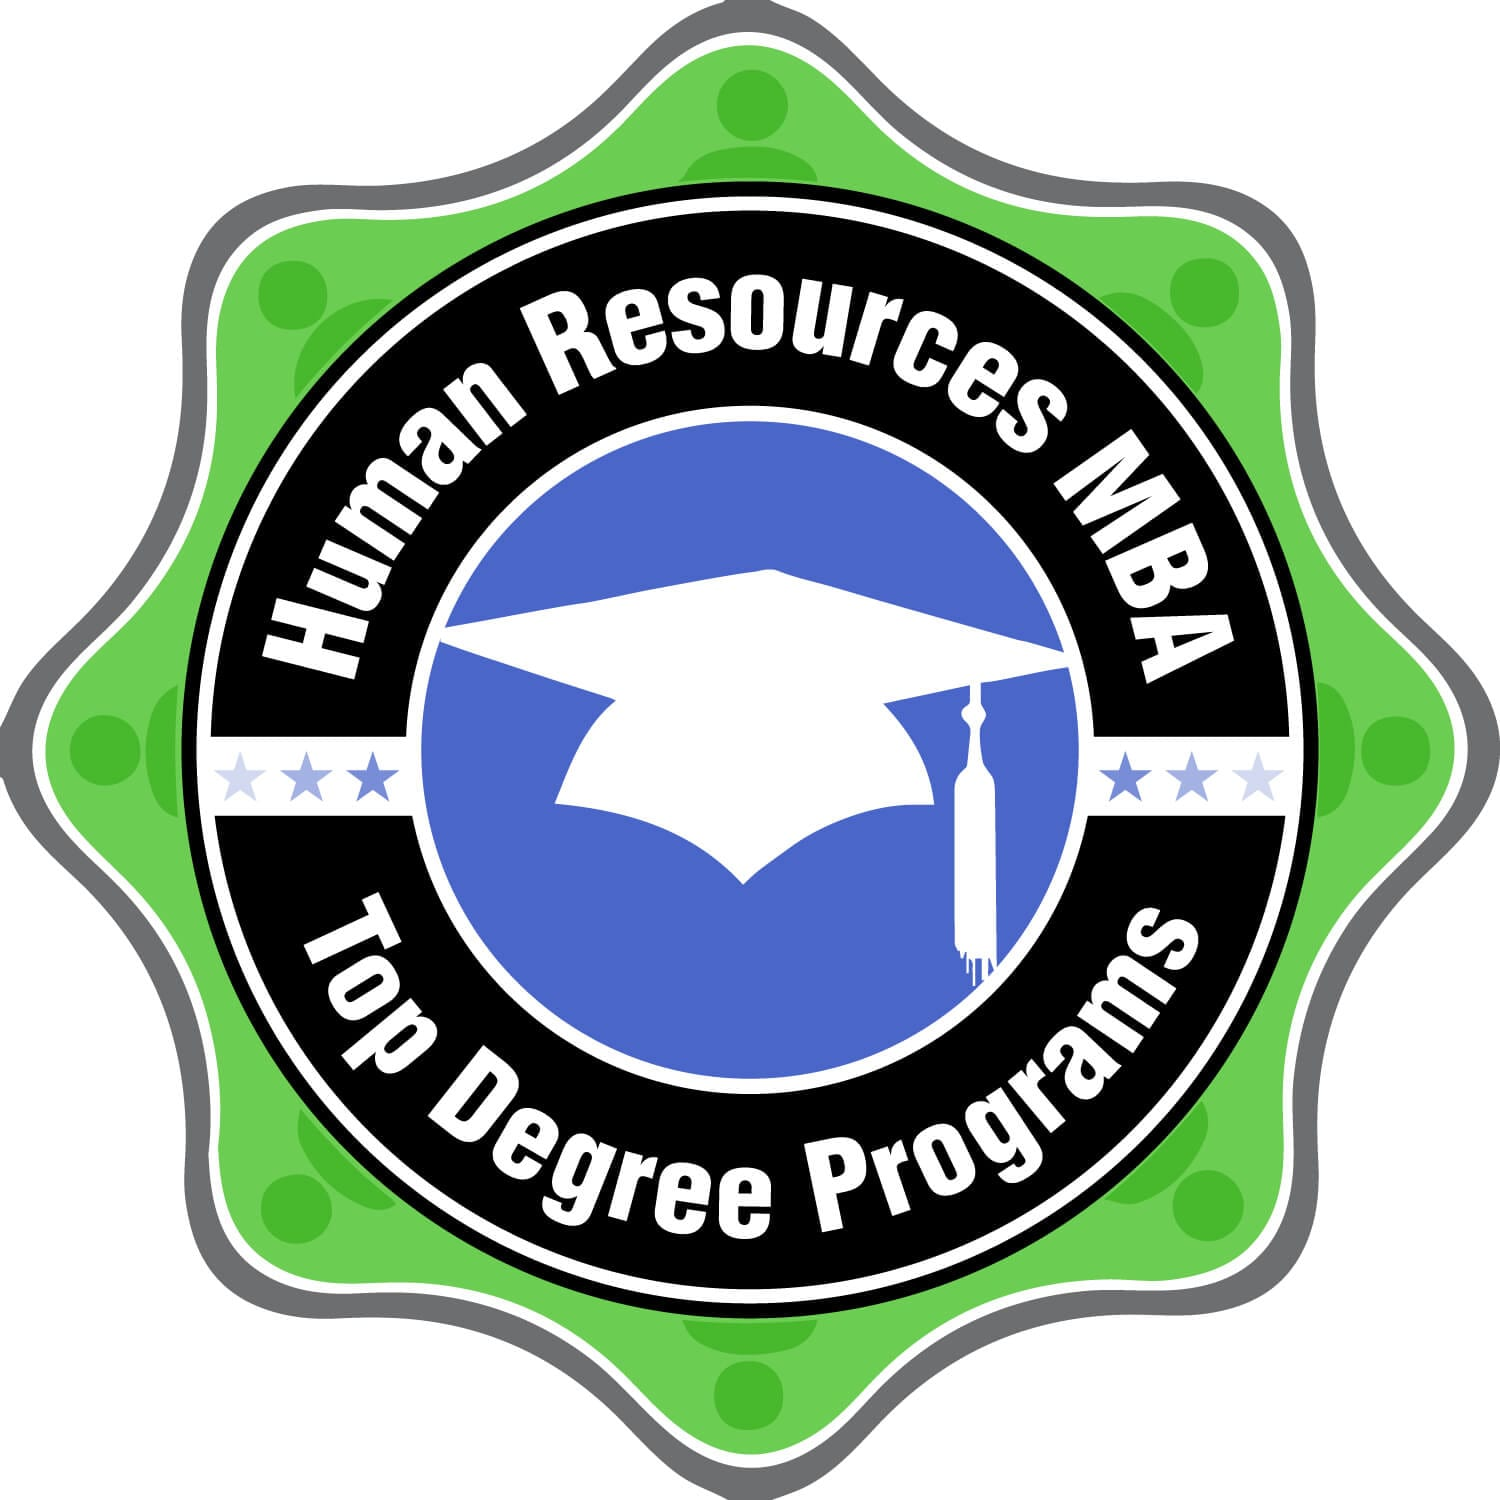 20 Best Masters in Human Resources Campusbased 2018 Human